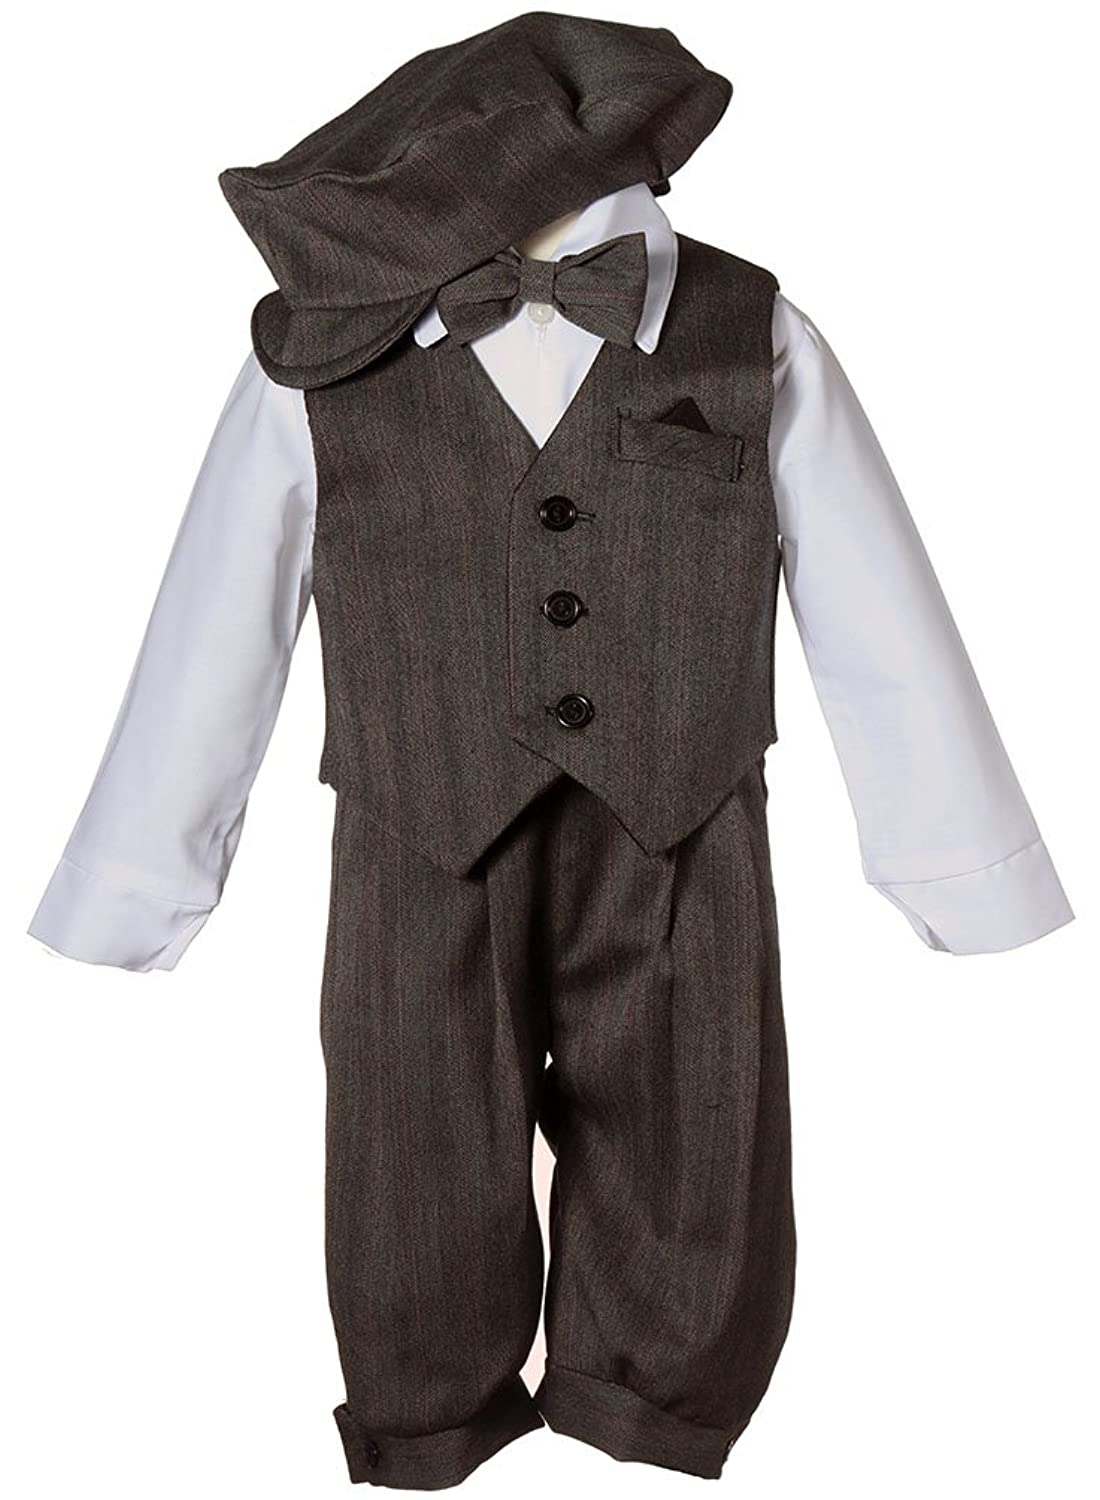 Kids 1950s Clothing & Costumes: Girls, Boys, Toddlers Boys Toddler Knicker Set with Vest and Hat - Vintage Grey Stripe $34.95 AT vintagedancer.com